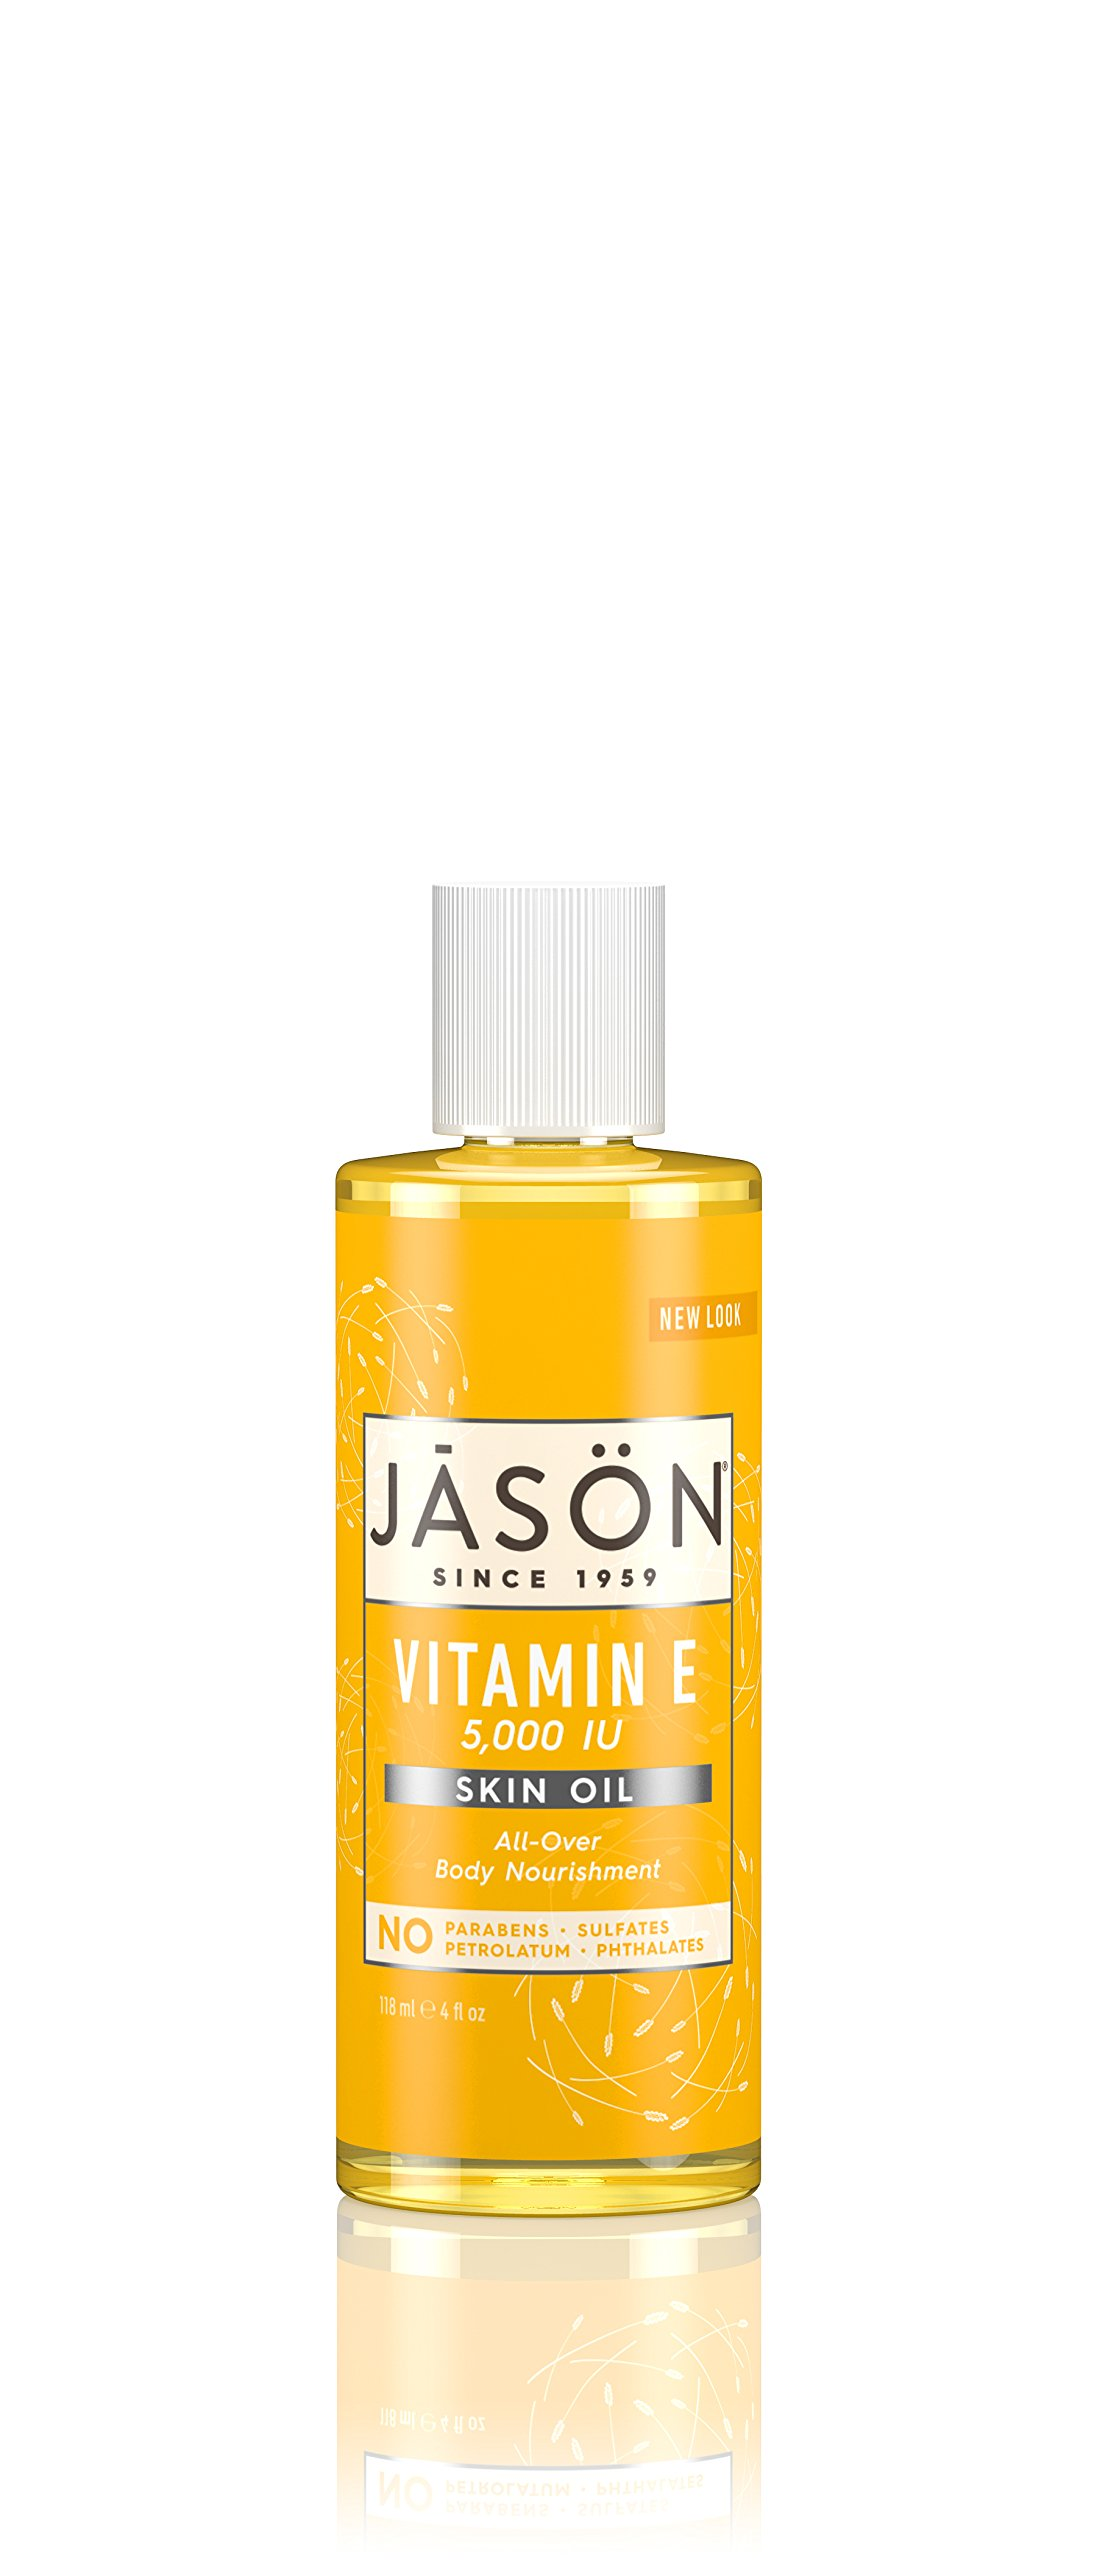 JASON Vitamin E 5,000 IU All Over Body Nourishment Oil, 4 oz. (Packaging May Vary)